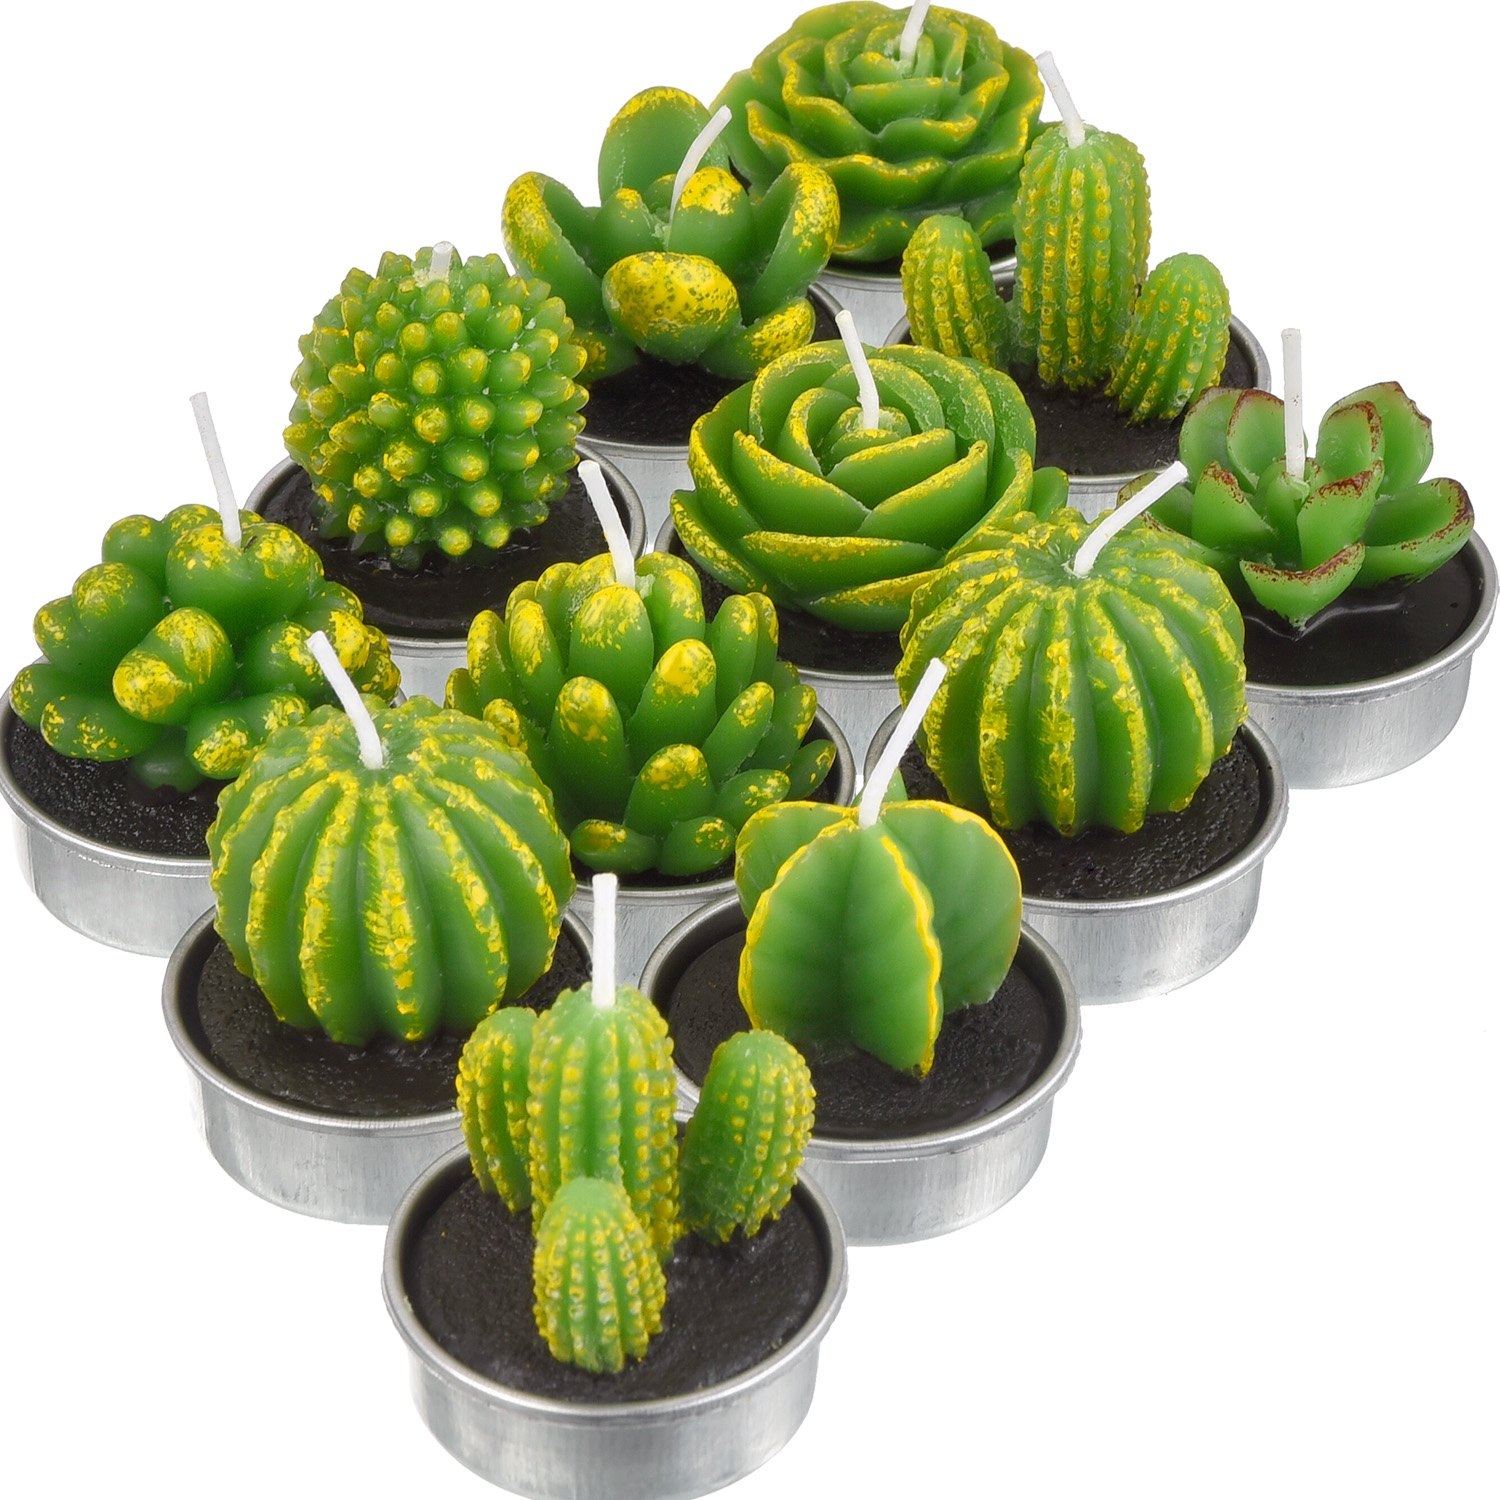 TecUnite 12 Pieces Cactus Tealight Candles Handmade Delicate Succulent Cactus Candles for Party Wedding Spa Home Decoration Gifts